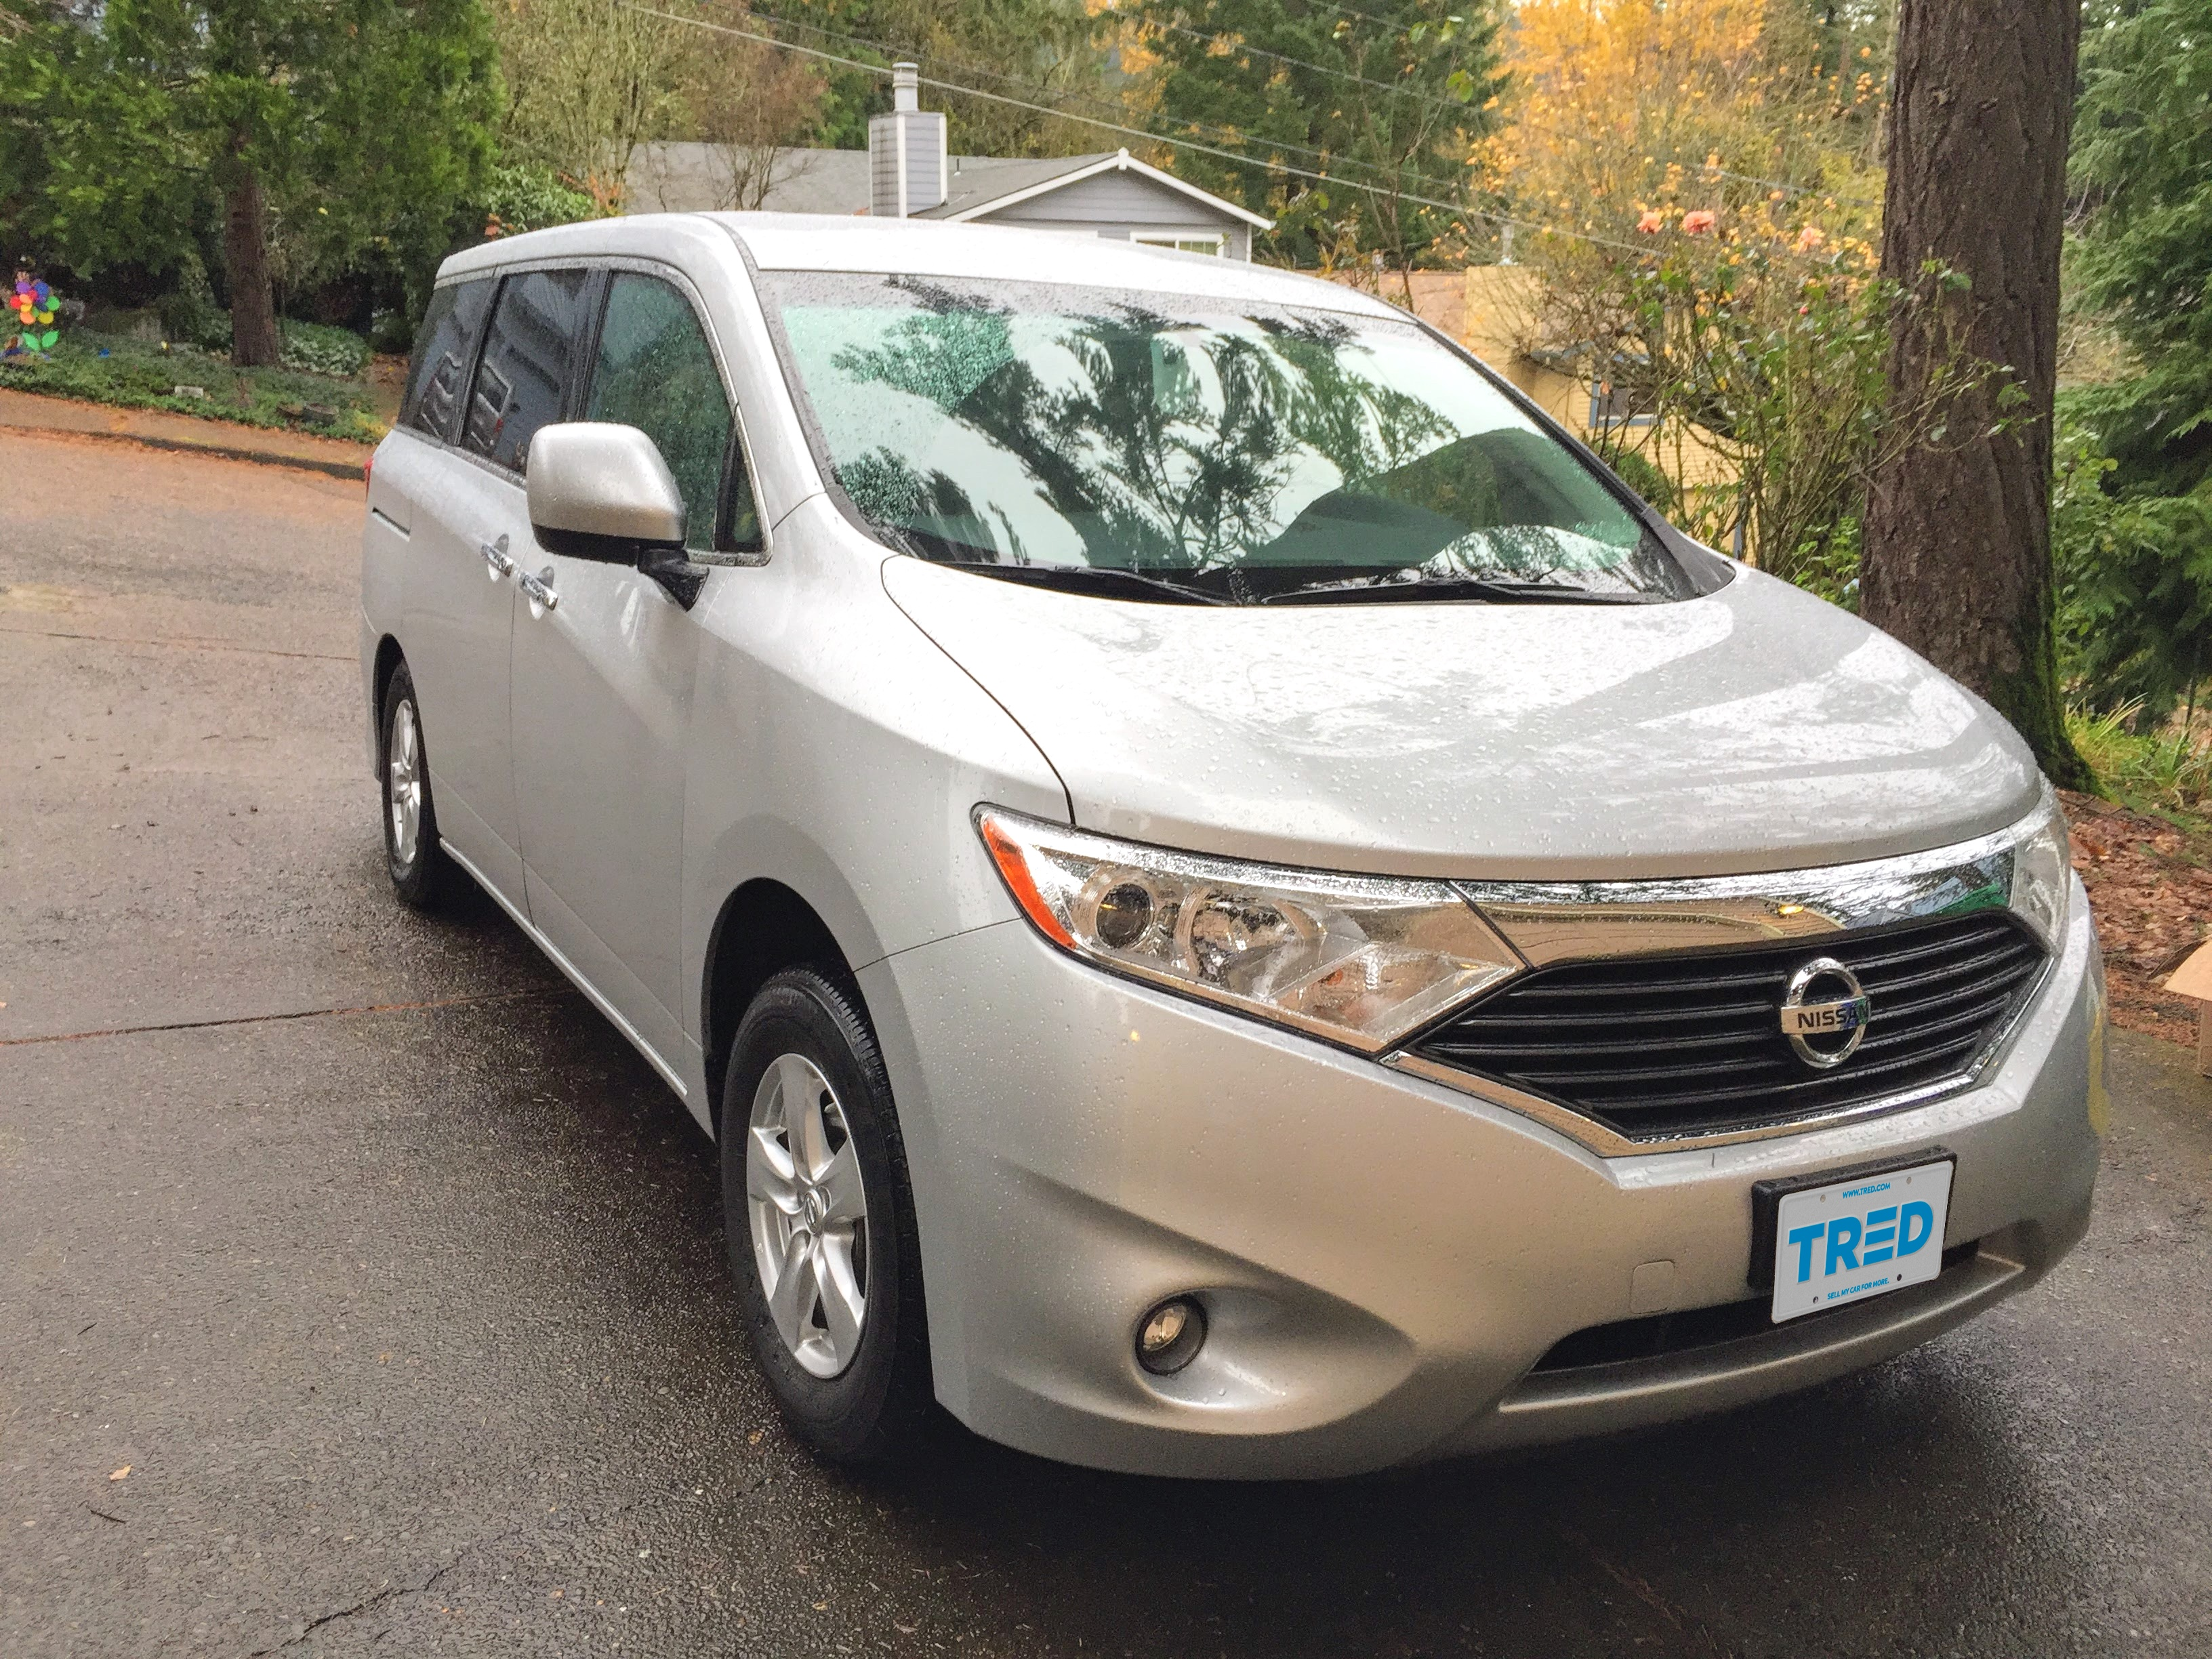 Used 2015 Nissan Quest For Sale near SW Capitol Hwy, Portland, OR | TRED